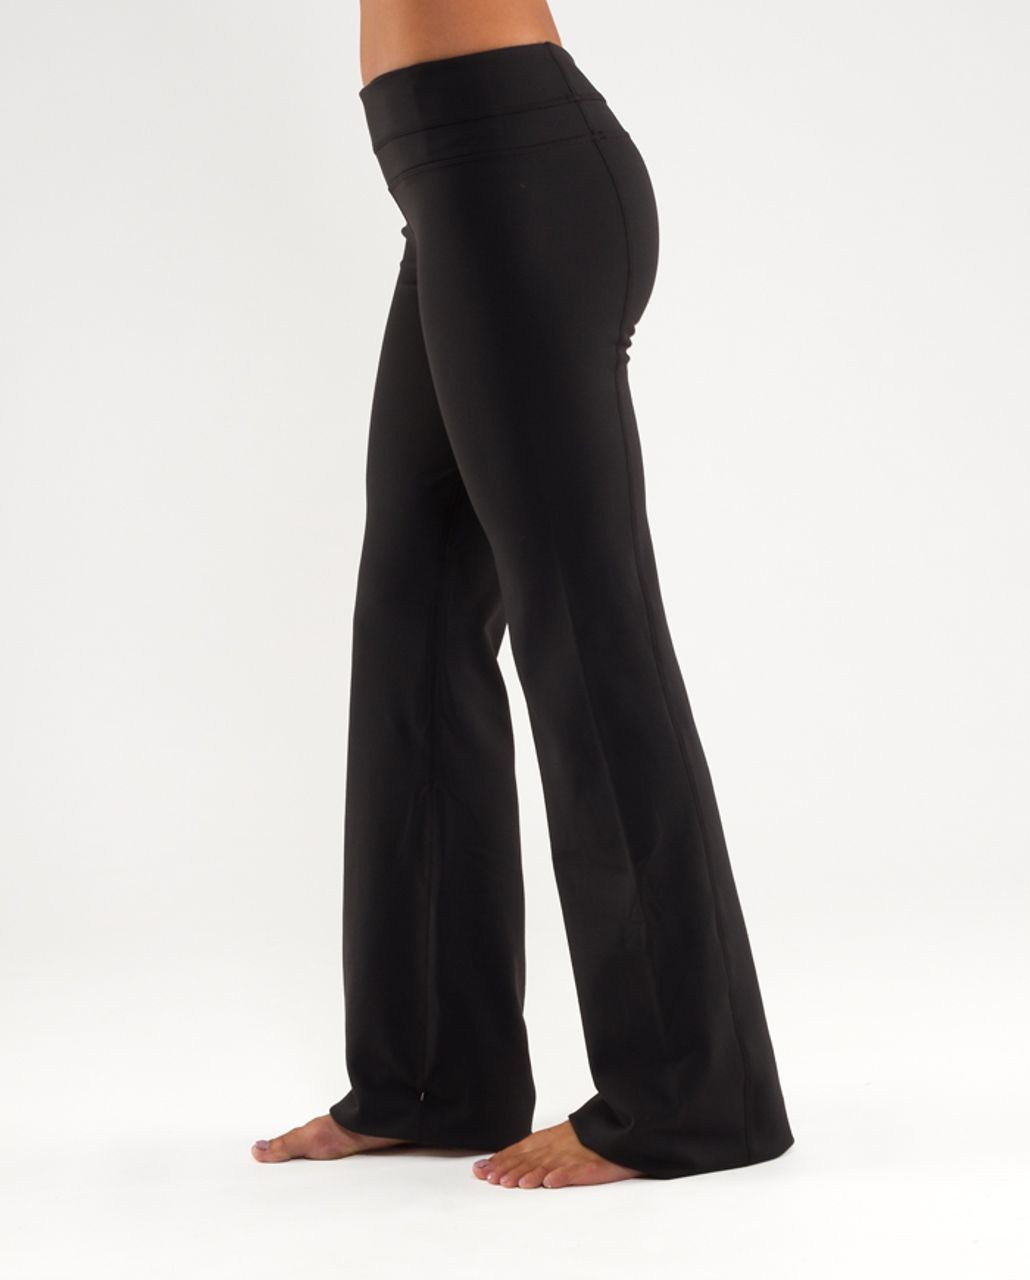 Lululemon Groove Pant (Regular) - Black /  Deep Coal